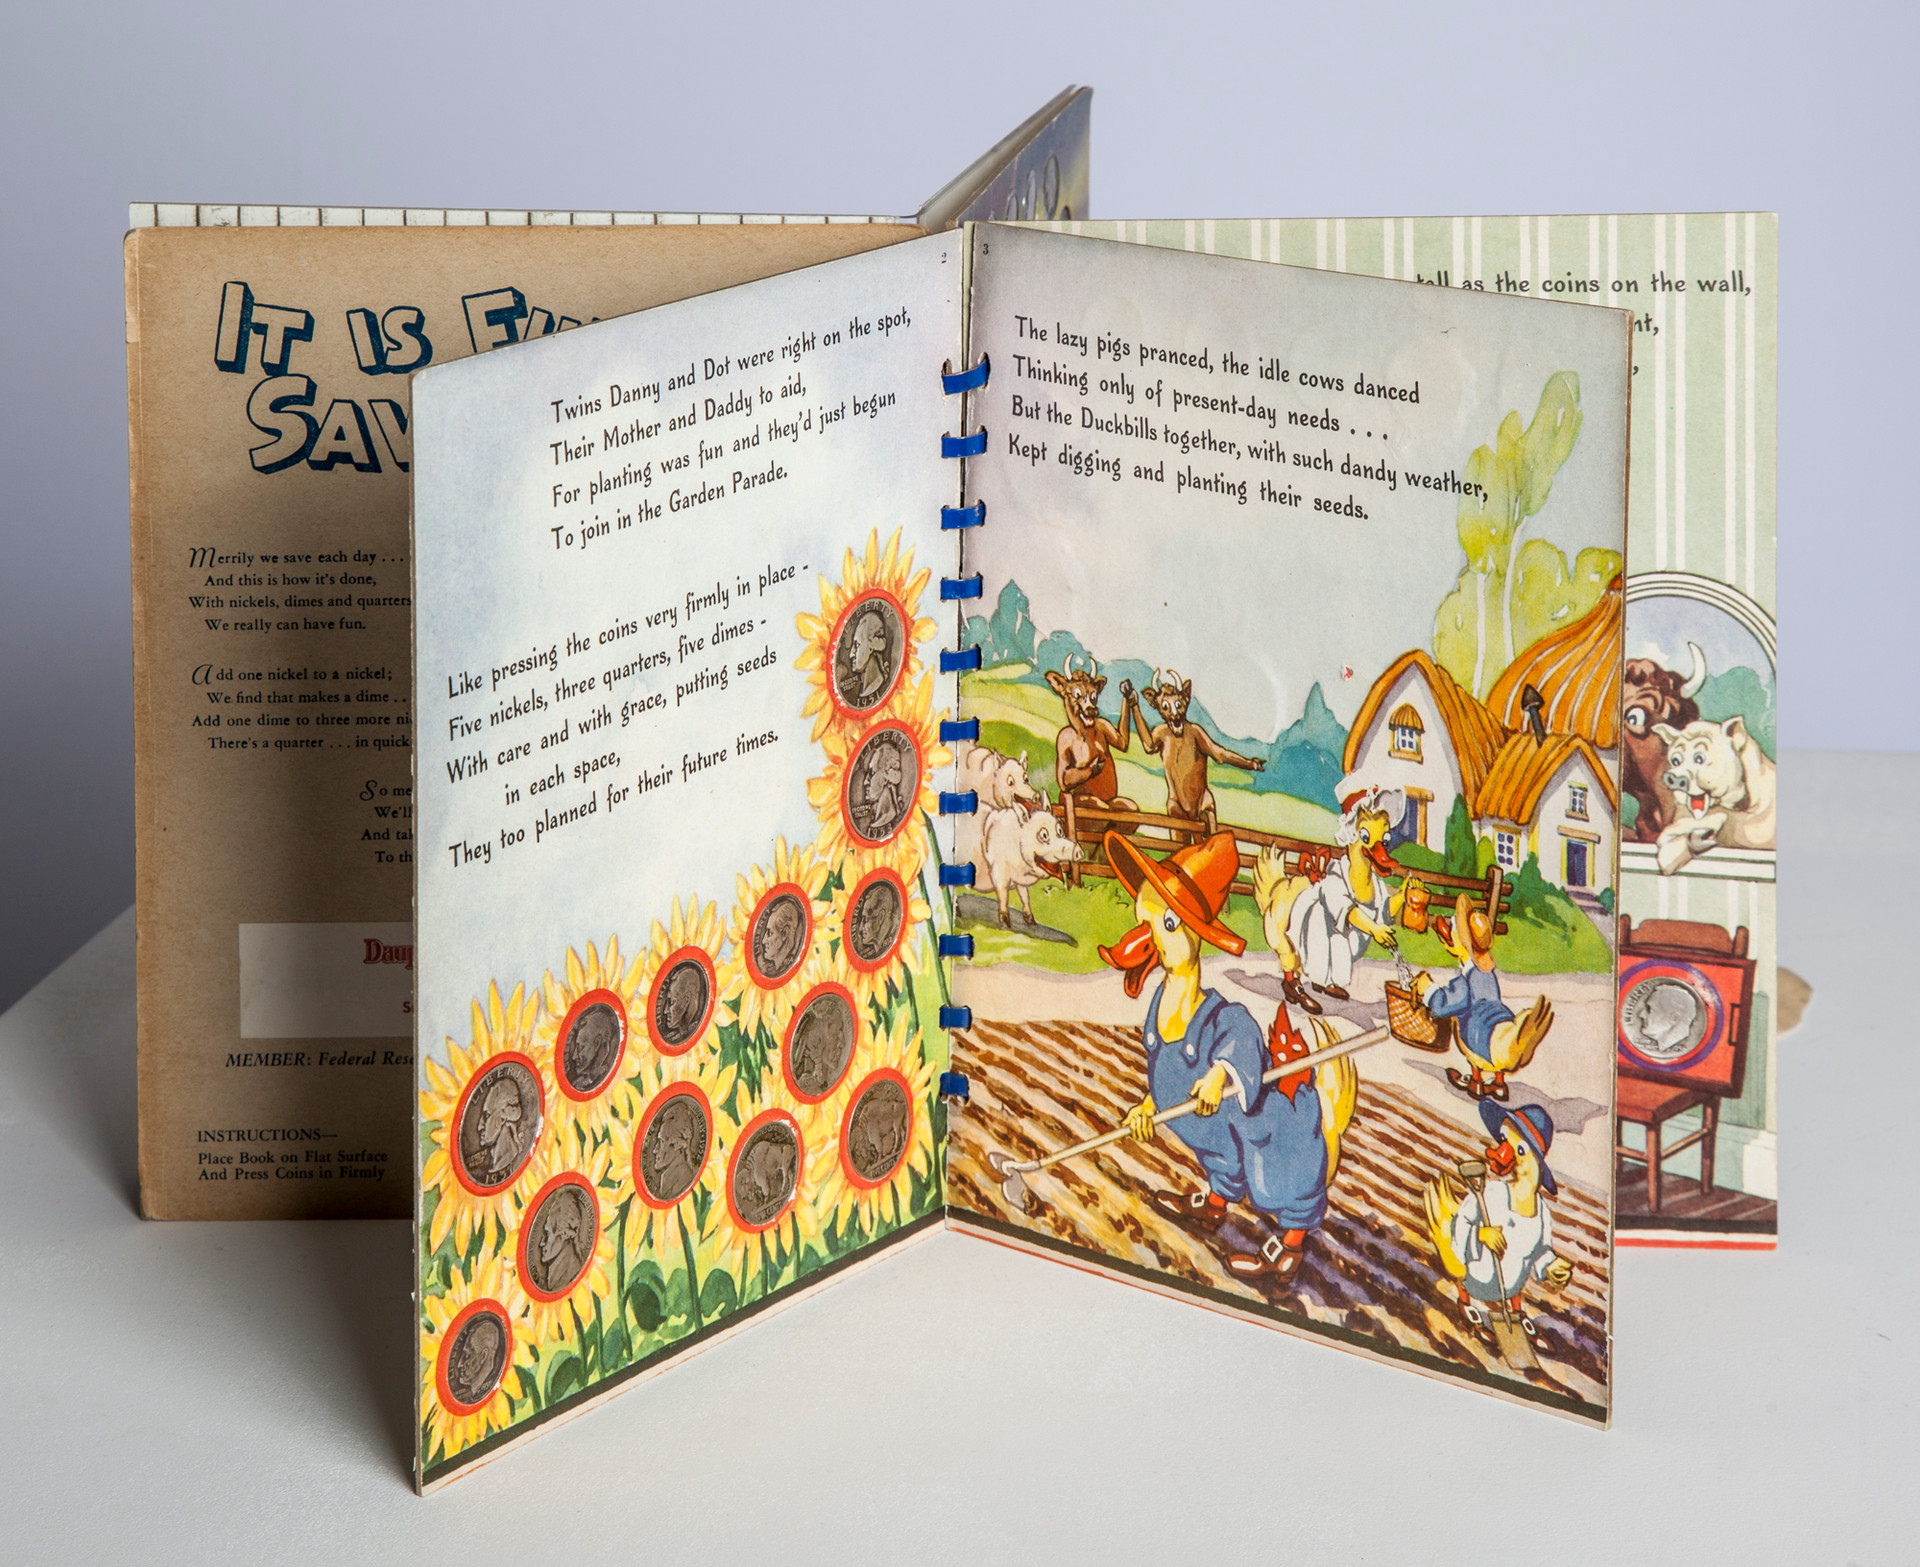 """Pages 2 and 3. Establishes the three elements of the book: didactic poetry, spaces for coin placement, and story illustration. Also introduces the Duckbill Family's negative counterparts who exemplify bad savers, the """"lazy"""" pigs and """"idle"""" cows."""